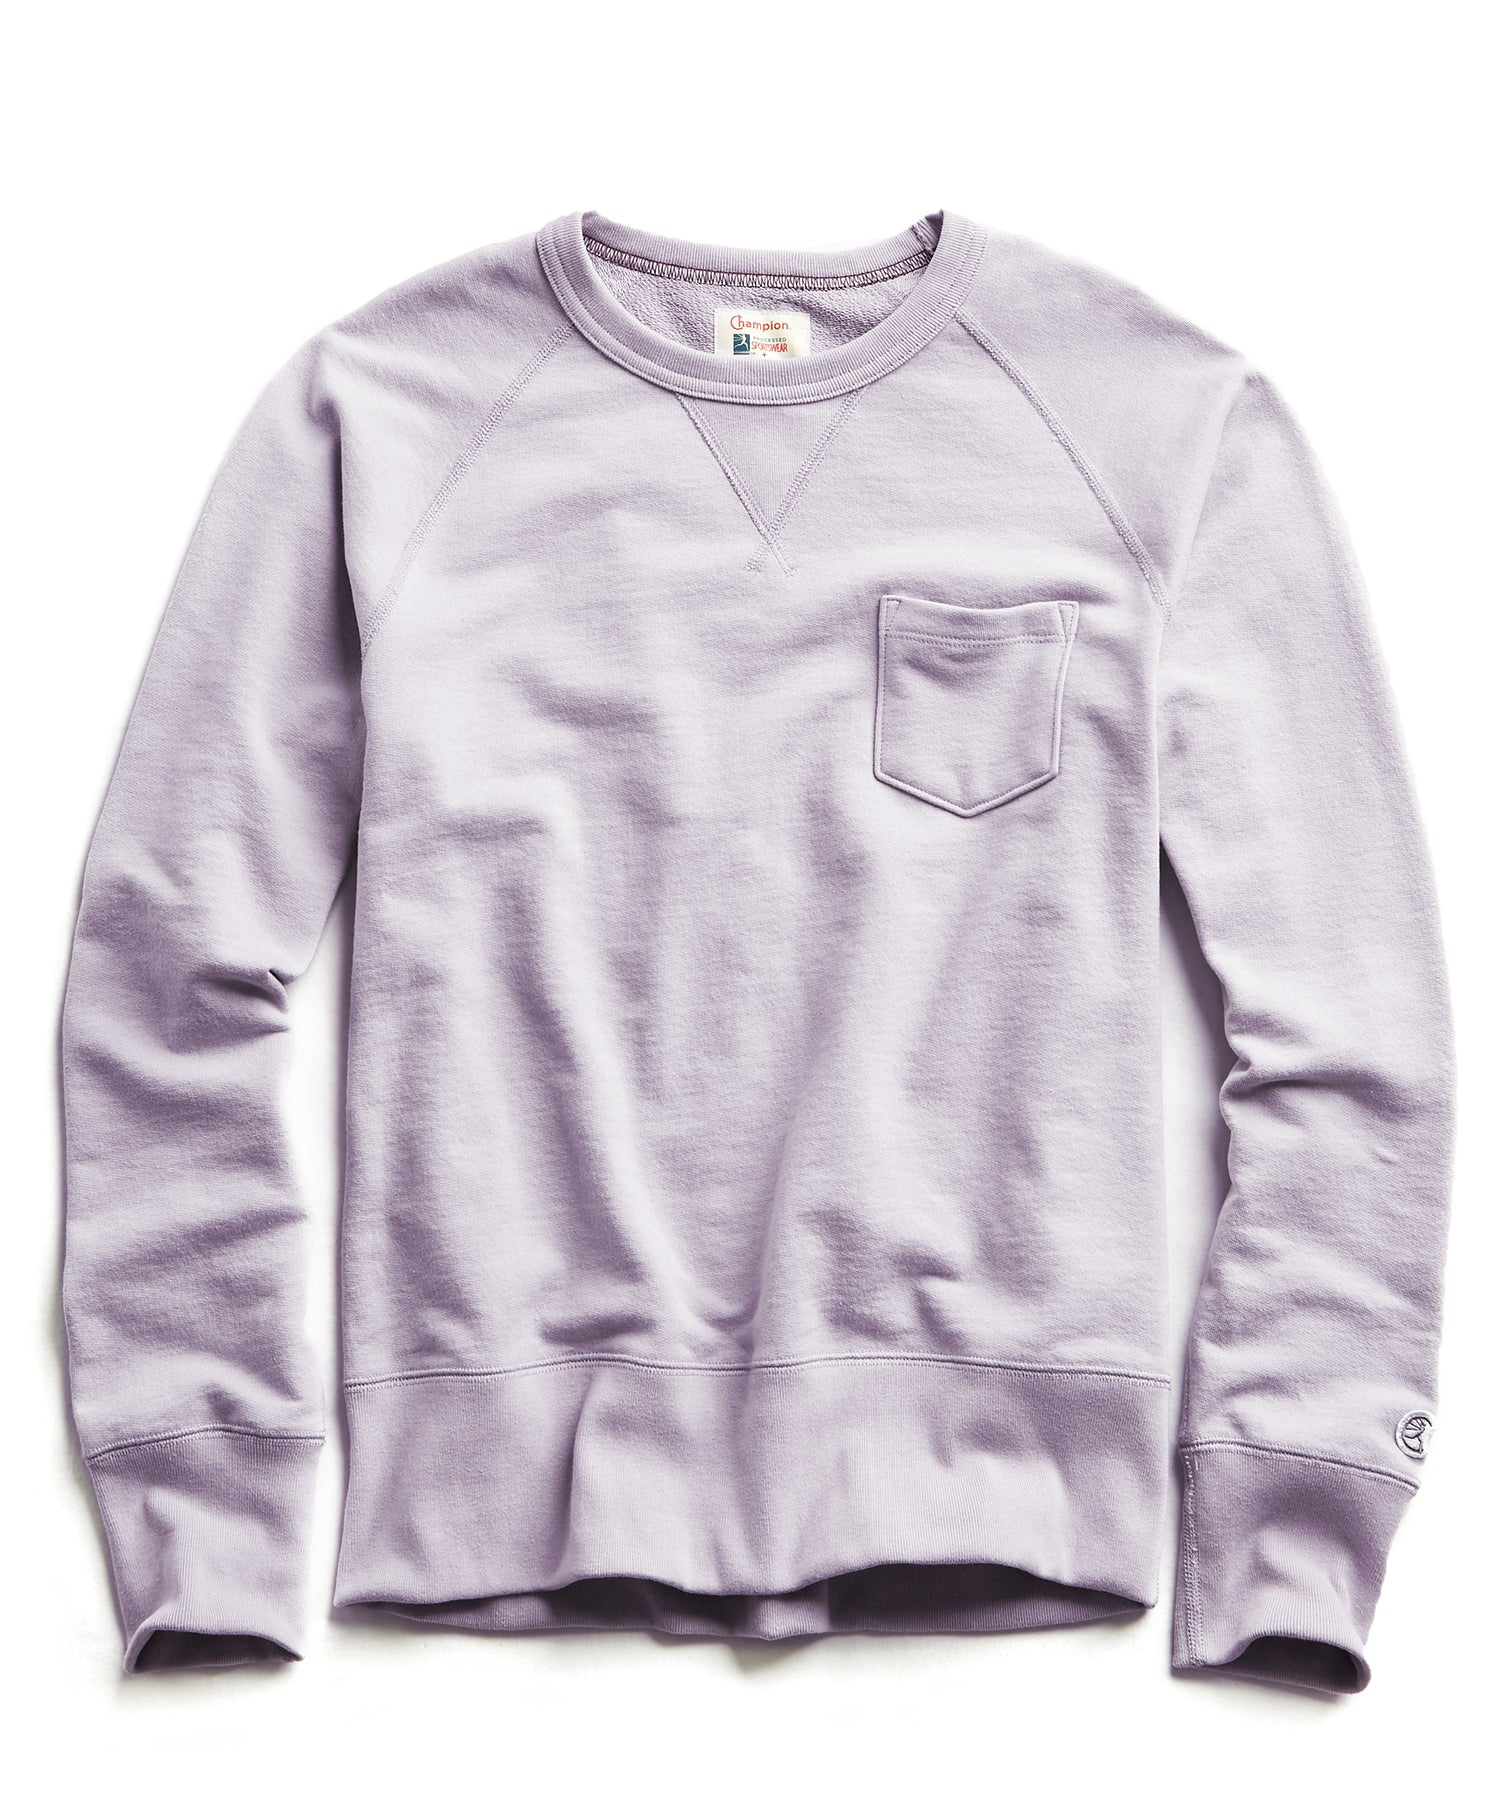 Terry Pocket Sweatshirt in Wisteria